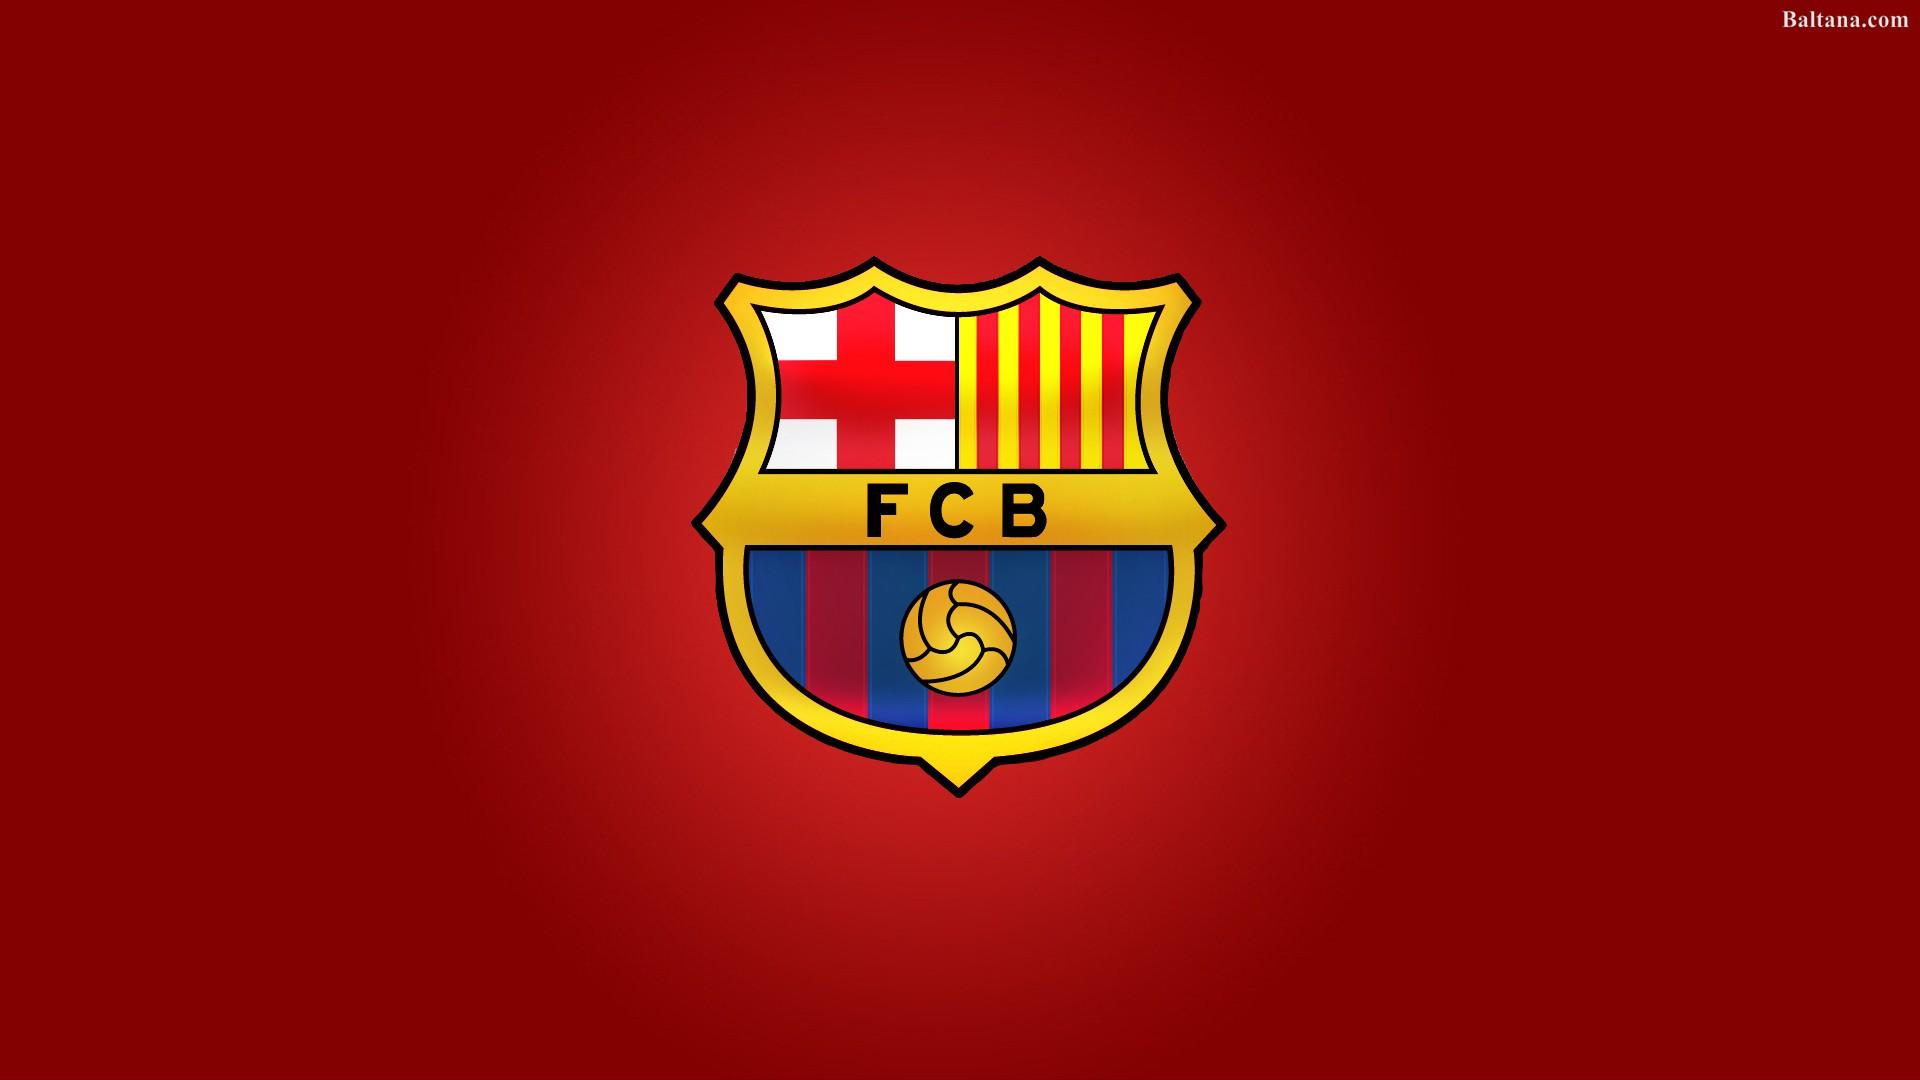 FC Barcelona 2019 Wallpapers - Wallpaper Cave